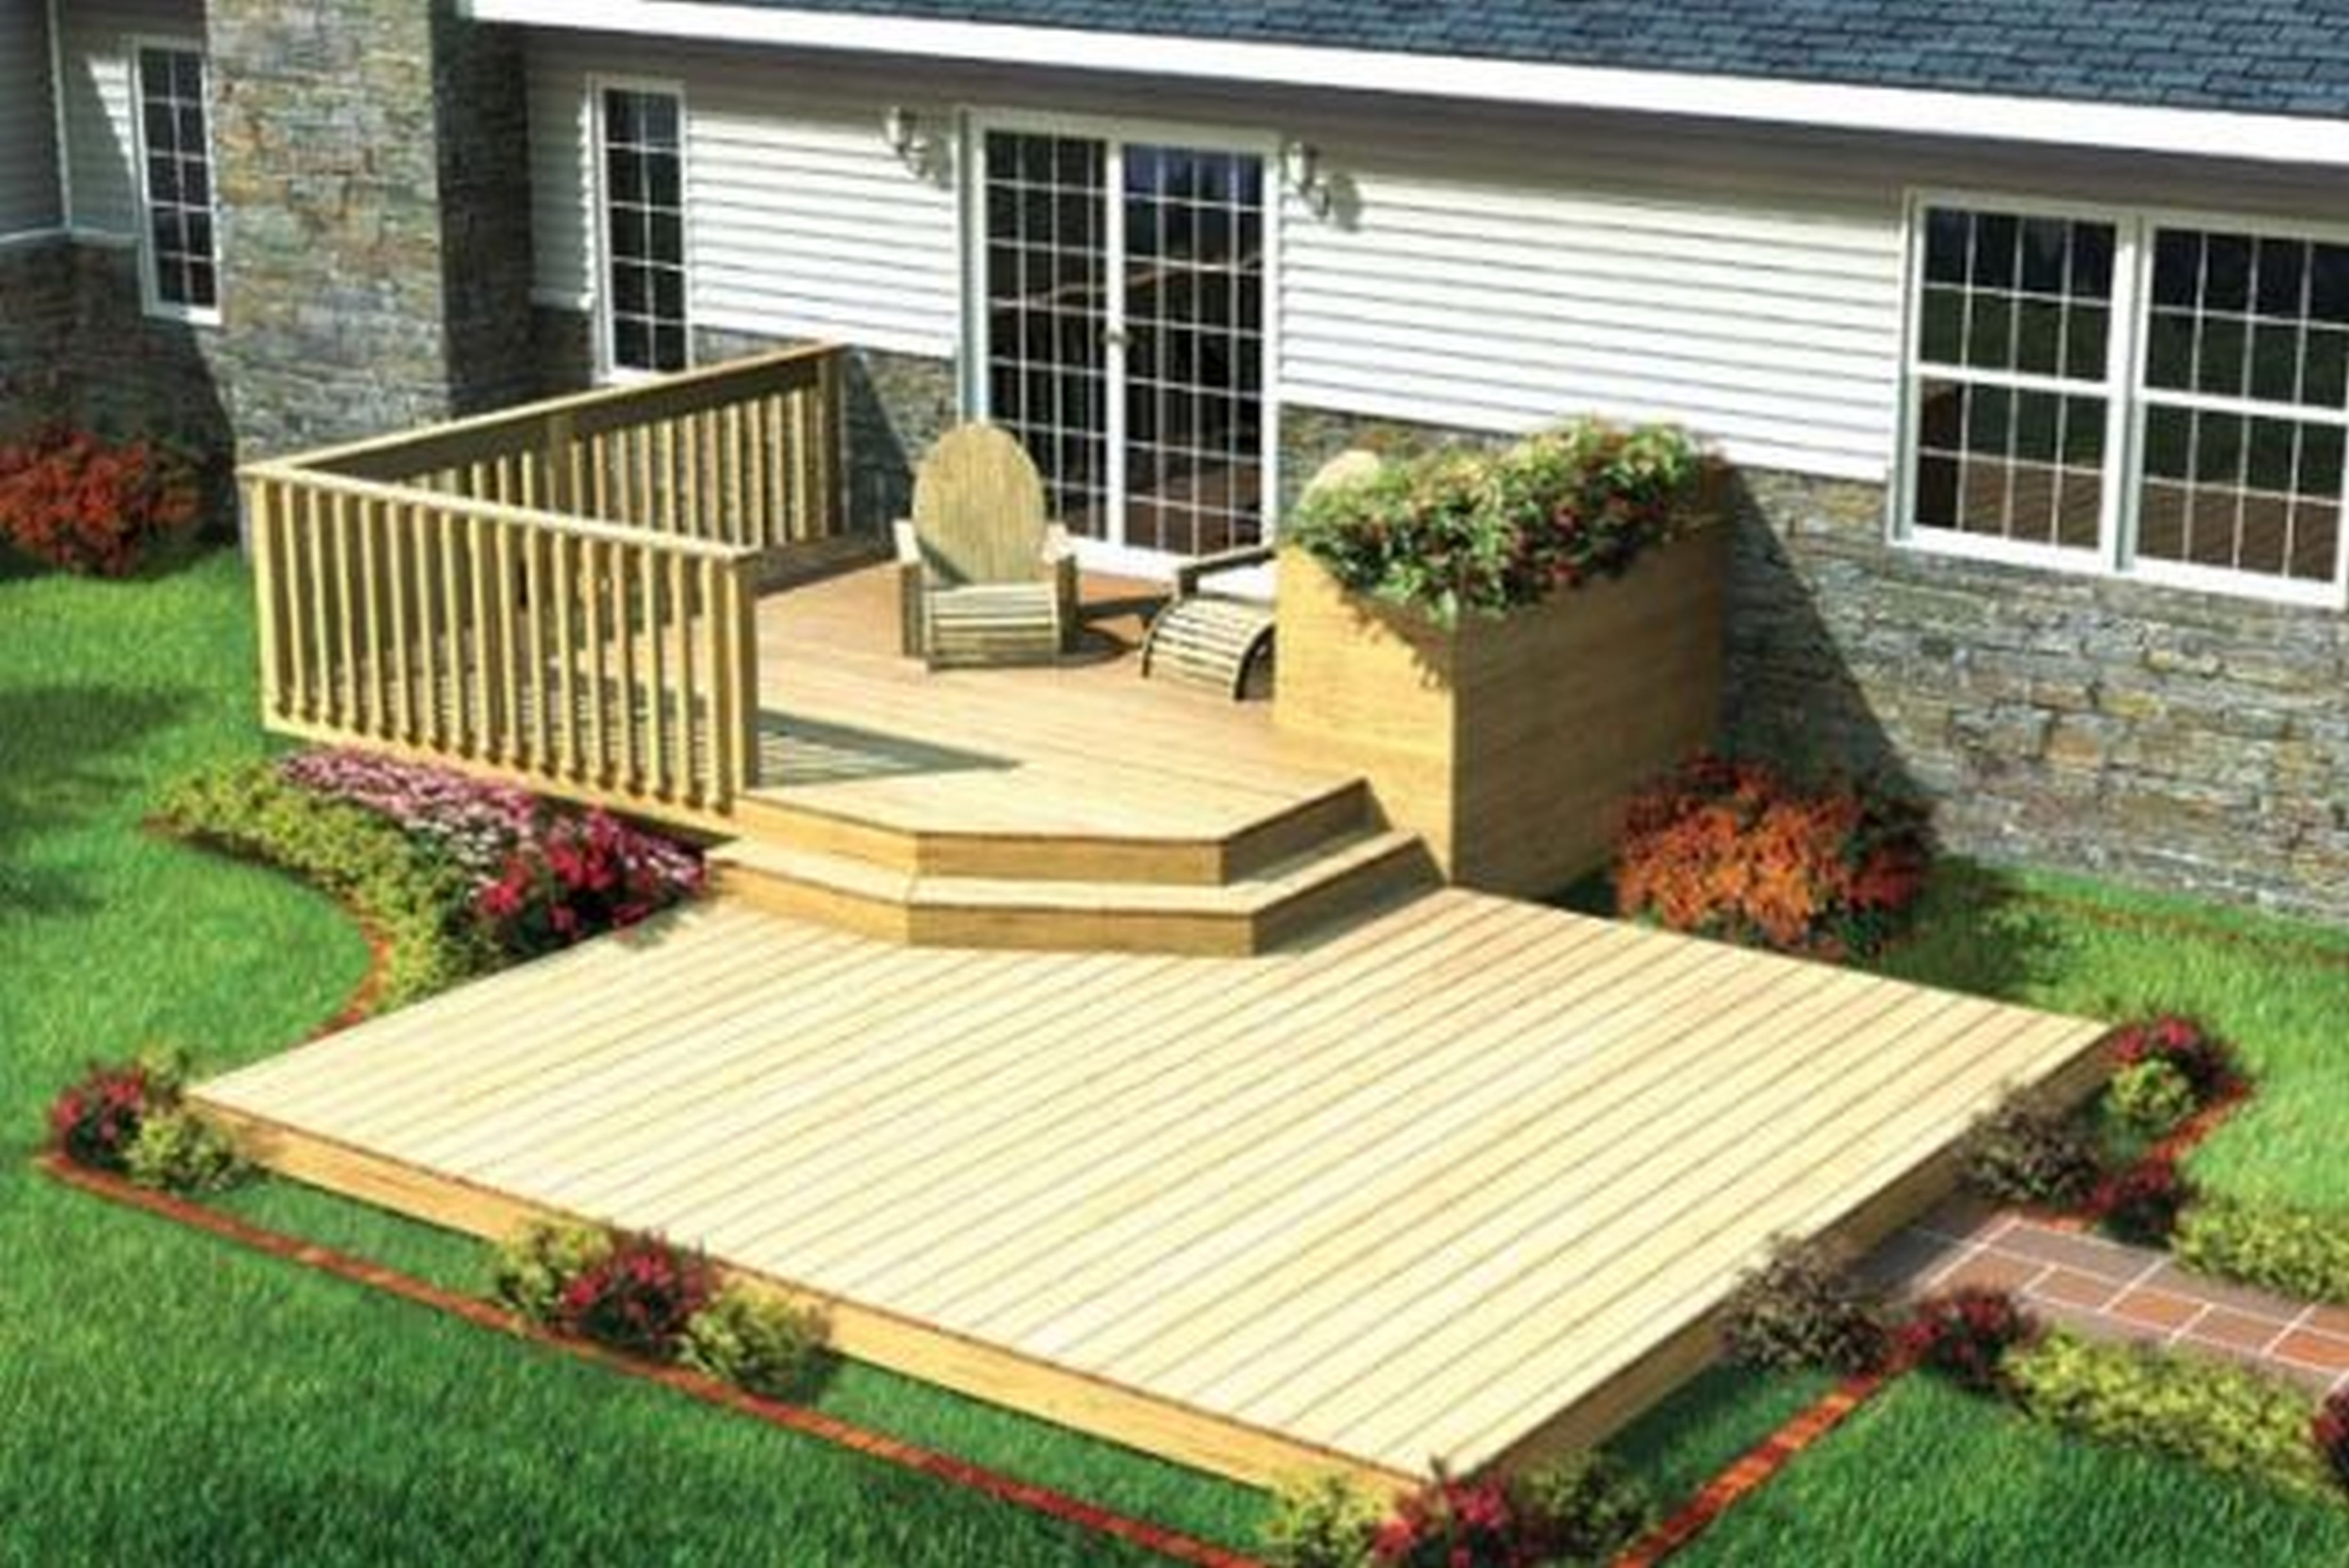 Incredible patio deck ideas Pertaining